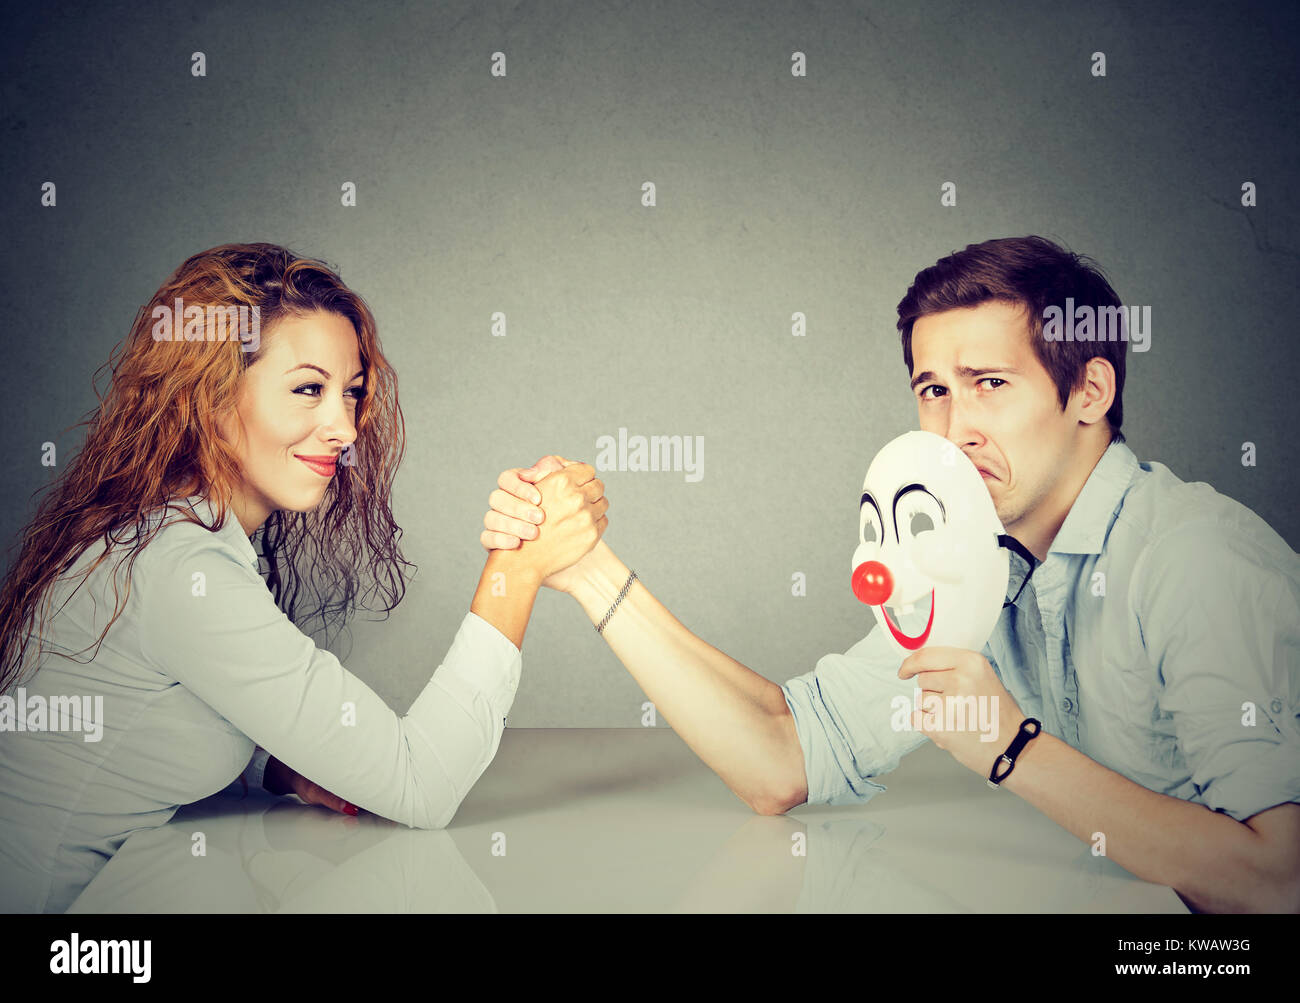 Woman and man having competition in arm wrestling fighting for gender rights - Stock Image